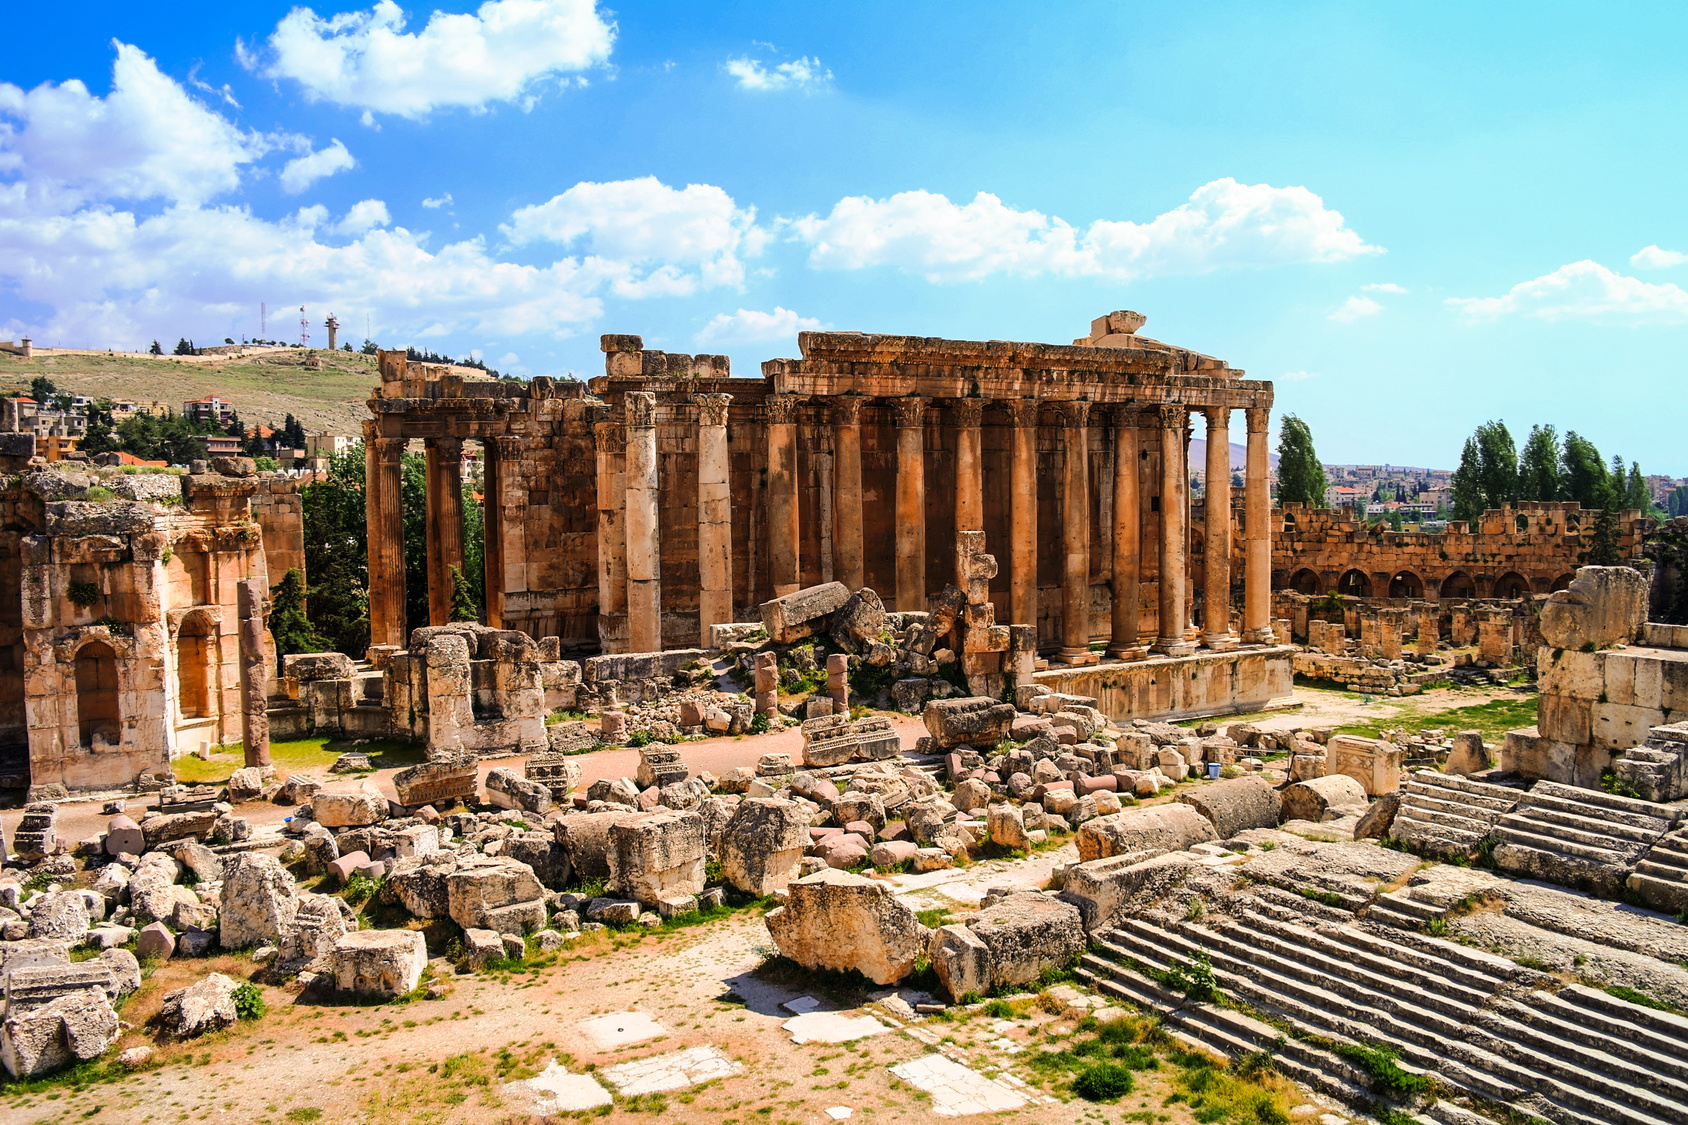 Ruins of Bacchus temple in Baalbek, Bekaa valley, Lebanon